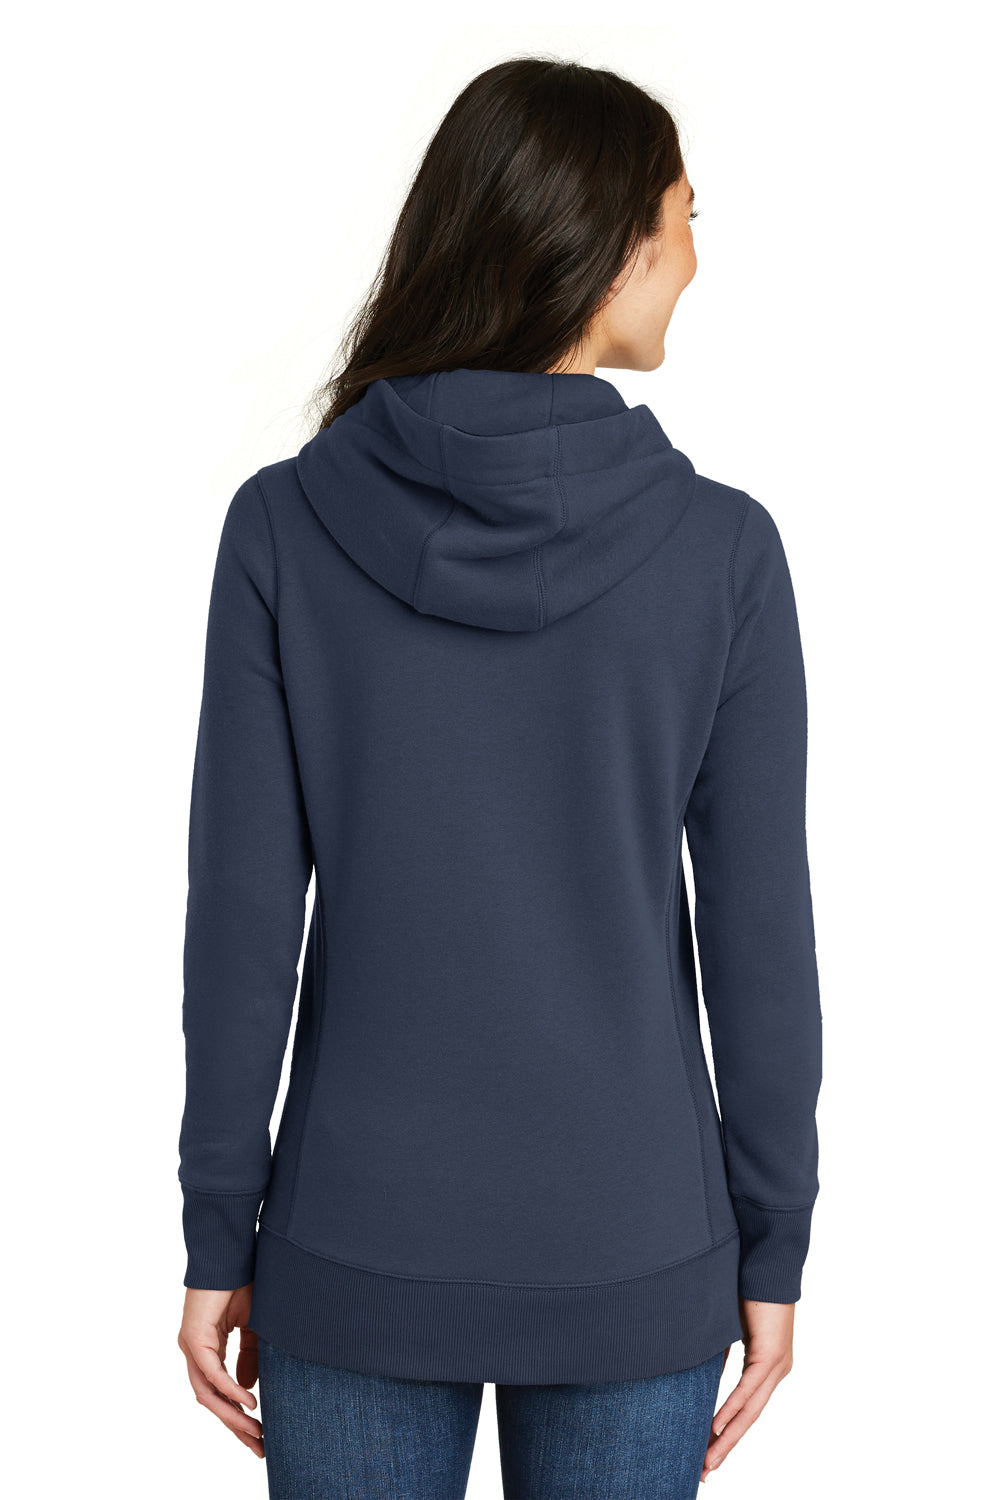 New Era LNEA500 Womens Sueded French Terry Hooded Sweatshirt Hoodie Navy Blue Back